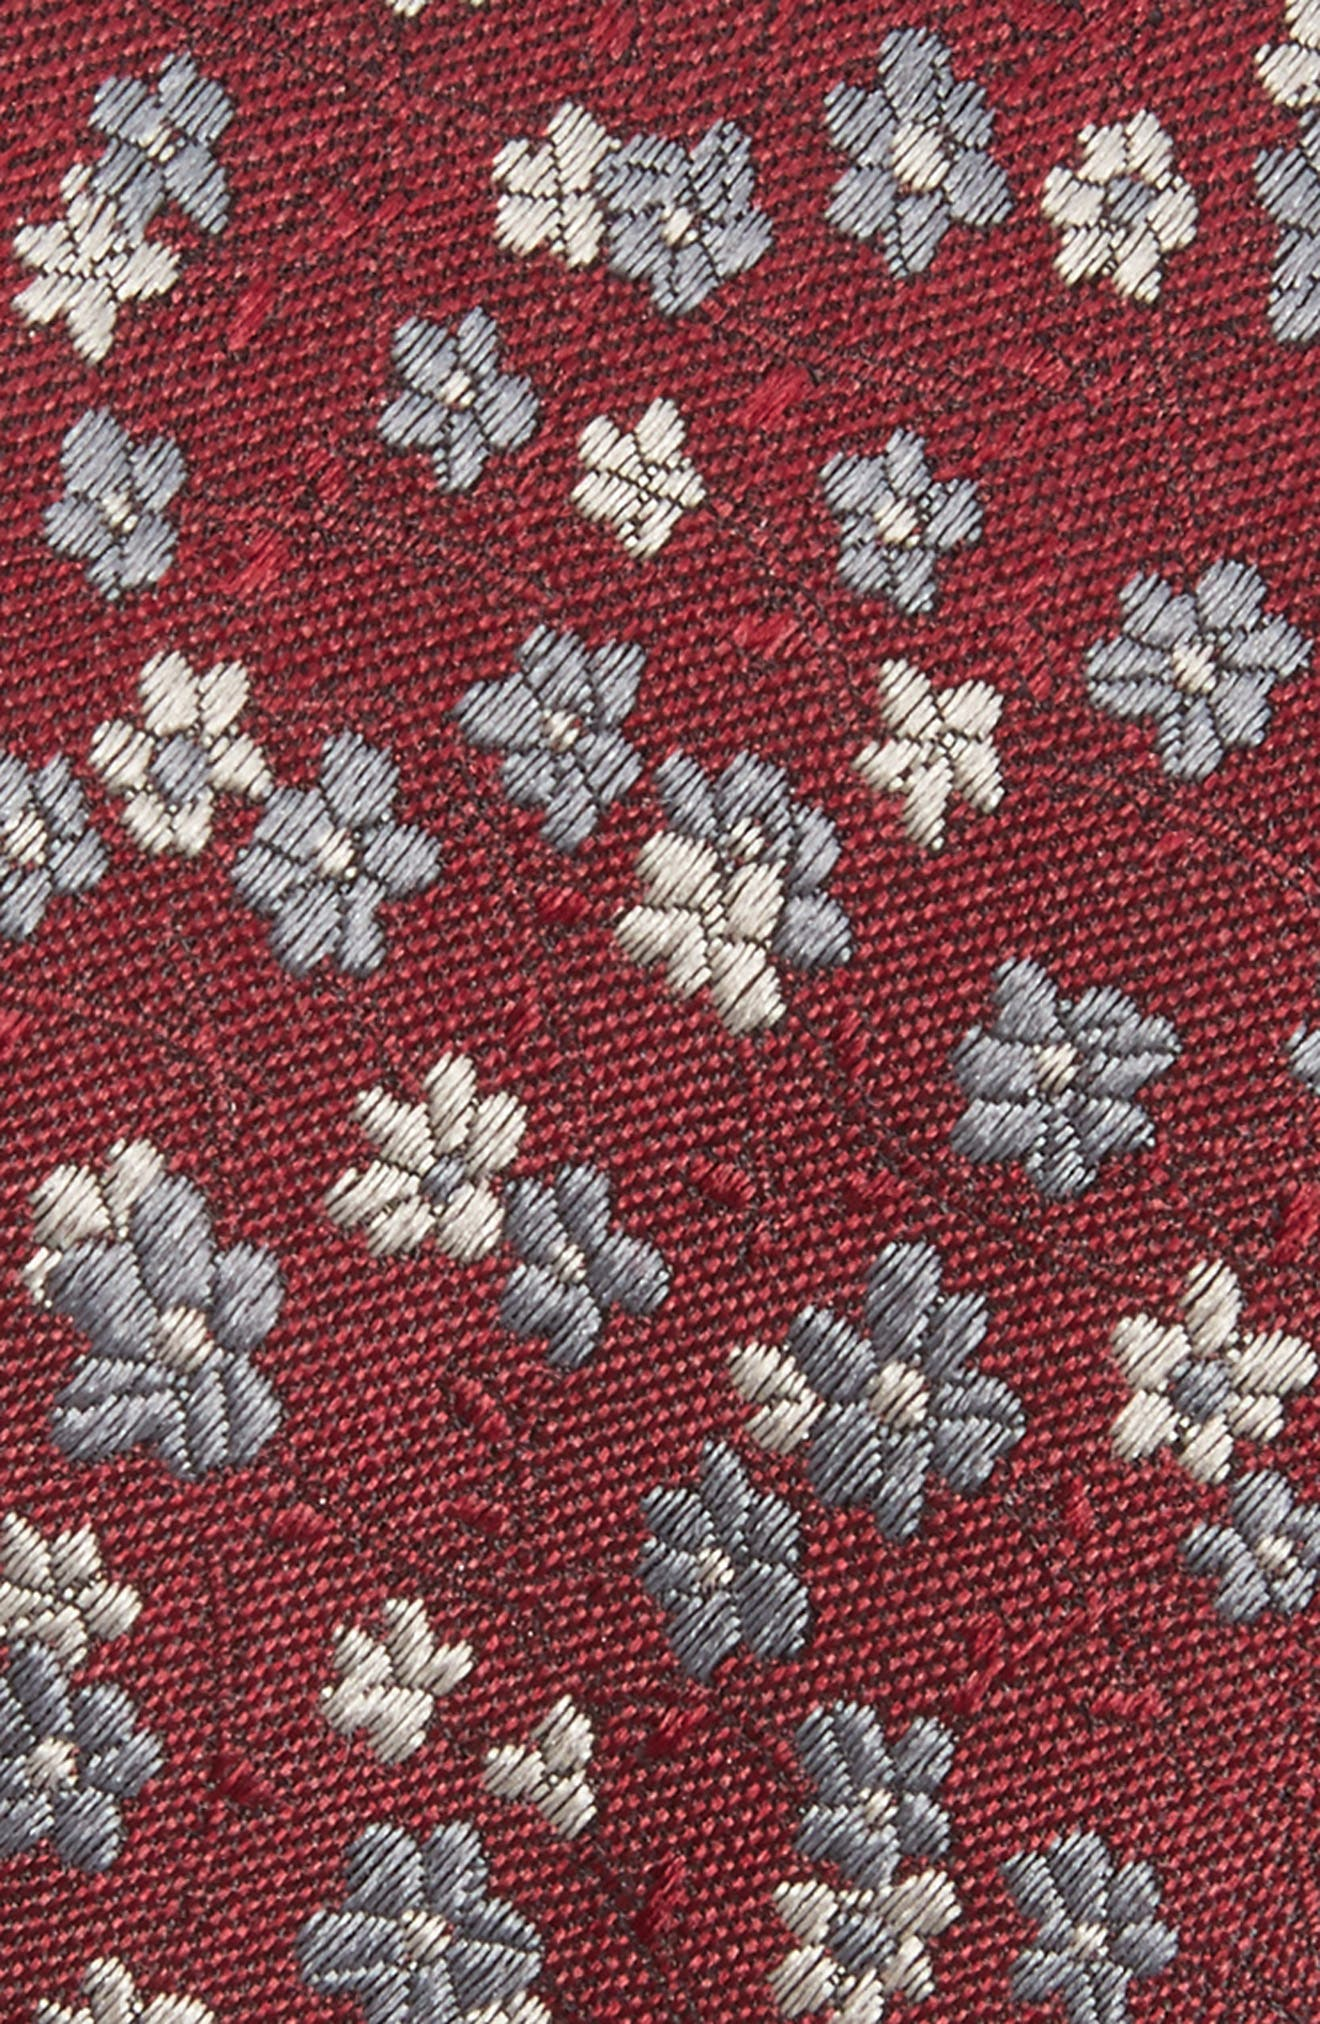 Freefall Floral Silk Tie,                             Alternate thumbnail 2, color,                             Burgundy